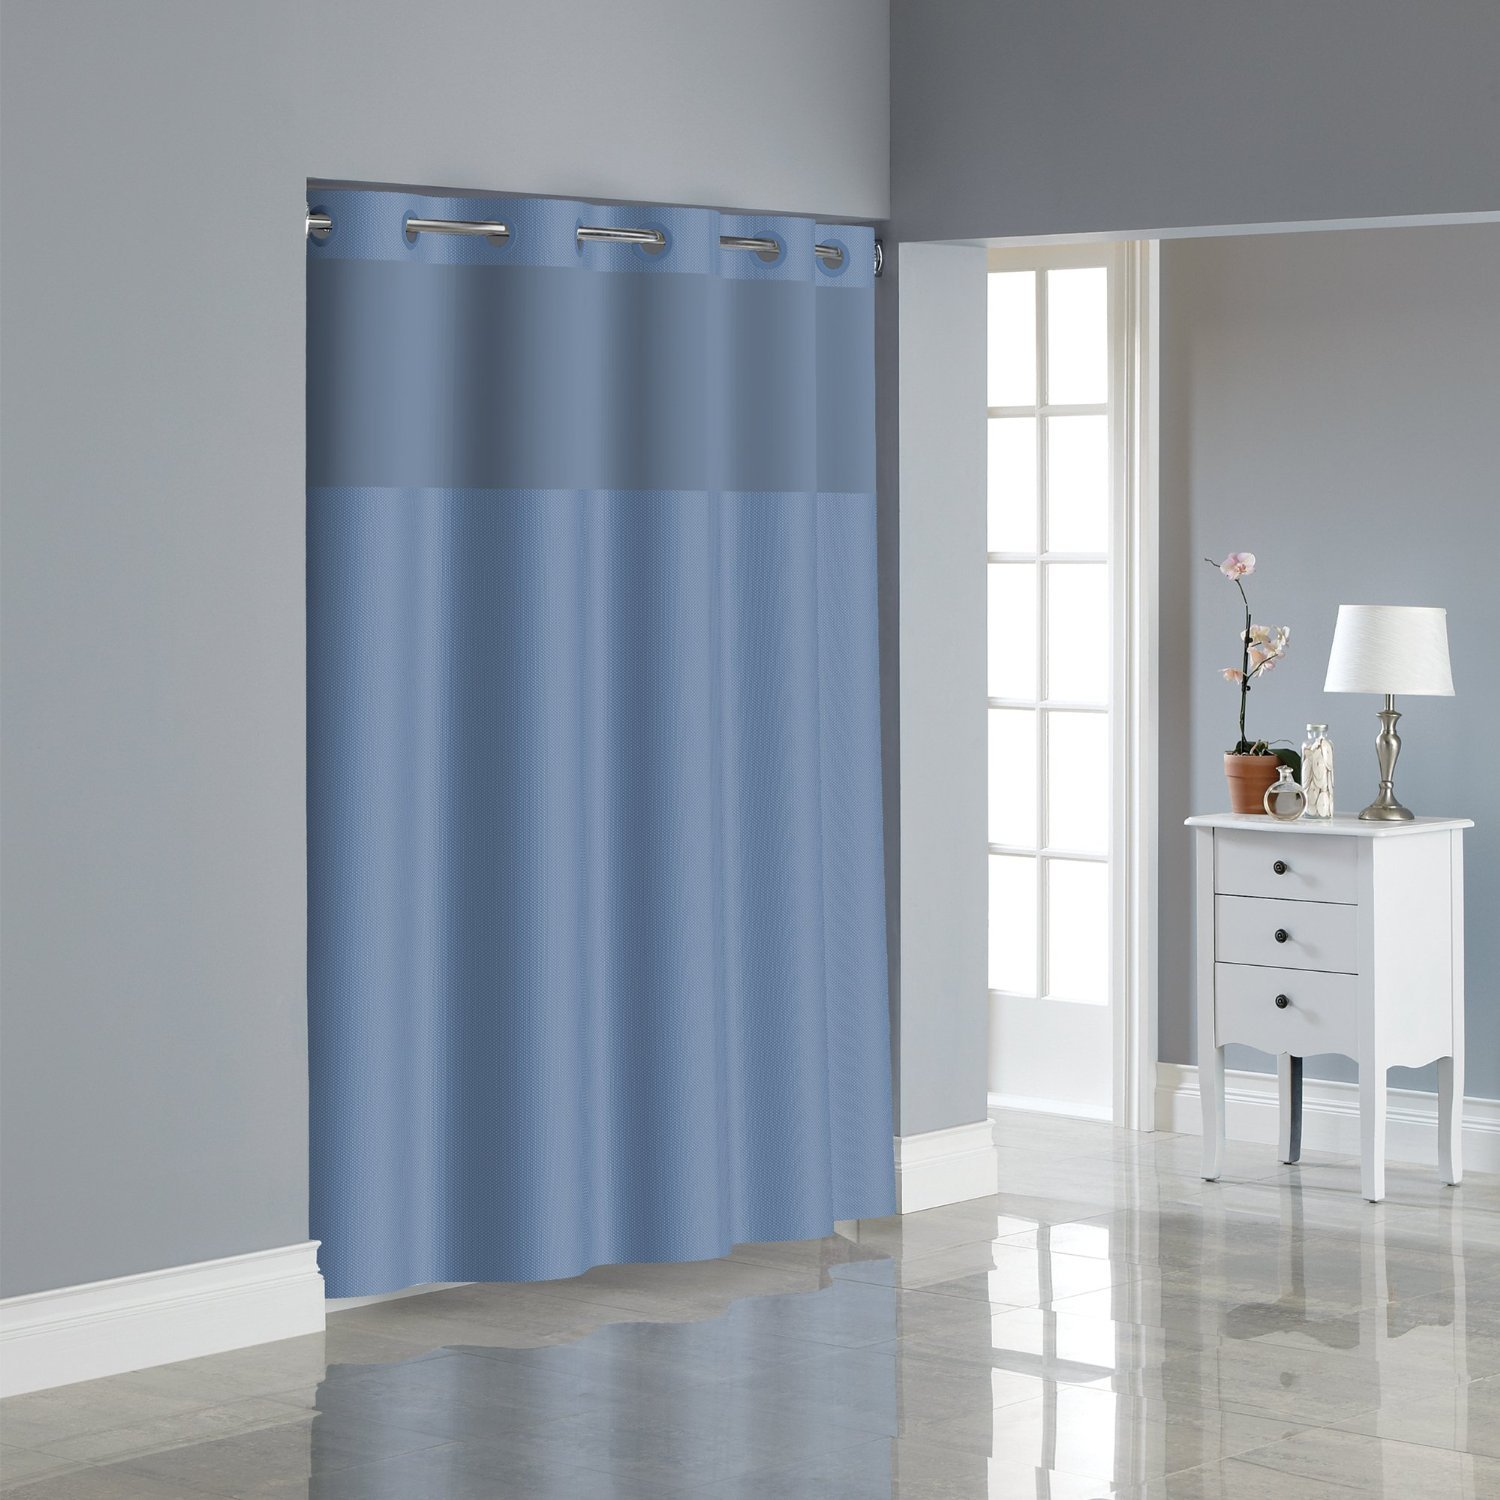 Amazon Hookless RBH80MY048 Fabric Shower Curtain With Built In PEVA Liner